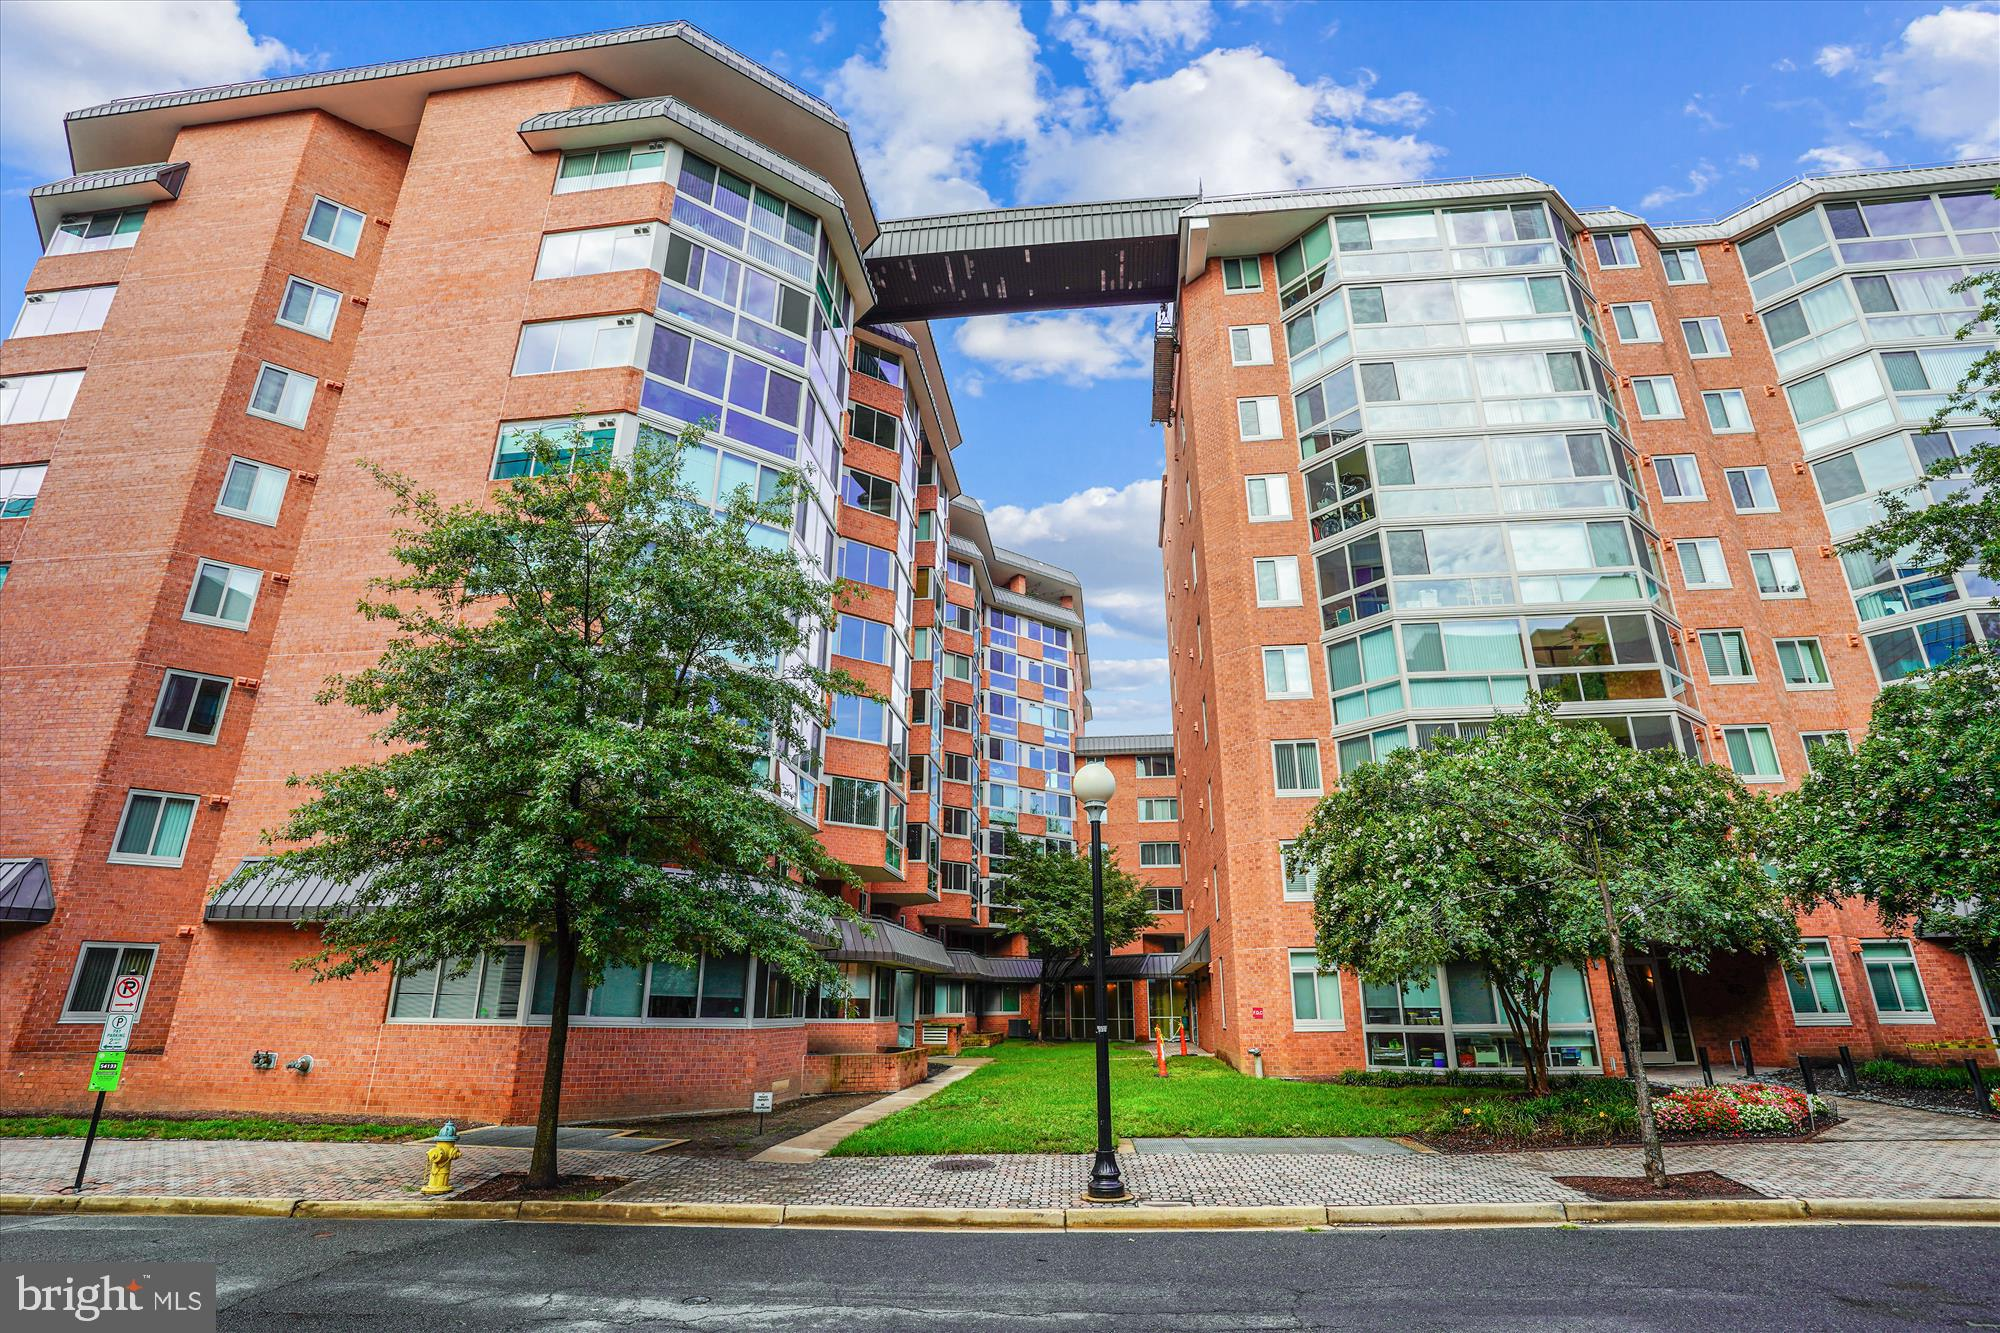 Welcome to the amenity rich Westview at Ballston Condo! Spacious unit with over 975 sq ft plus a large sunroom, garage parking and major systems updated: 2019 Carrier HVAC, 2019 Water Heater, brand new windows. In unit washer/dryer, large walk-in closets, spacious bathrooms, and located at the end of the hall.  Currently rented for $2200/mo - tenant wants to stay or can vacate by 10/31/2020. Located just a few blocks away from the Ballston metro, Ballston Quarter (so many great restaurant options!), and easy access to major roadways. Underground garage parking, pet friendly.